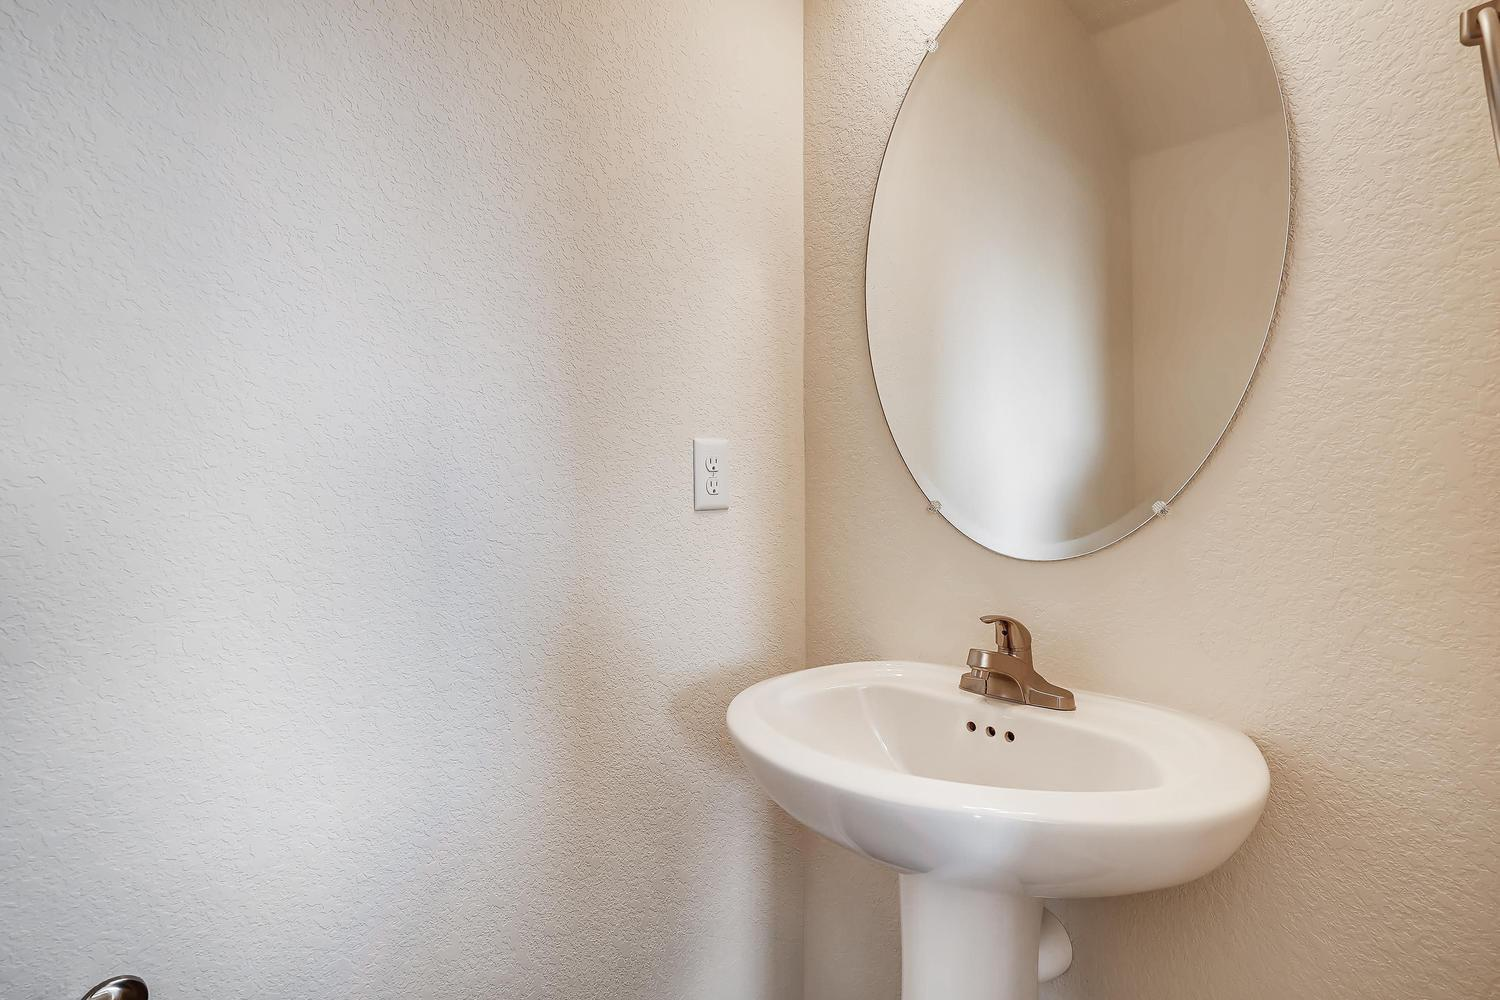 Bathroom featured in the Clear Sky By BLVDWAY Communities in Denver, CO